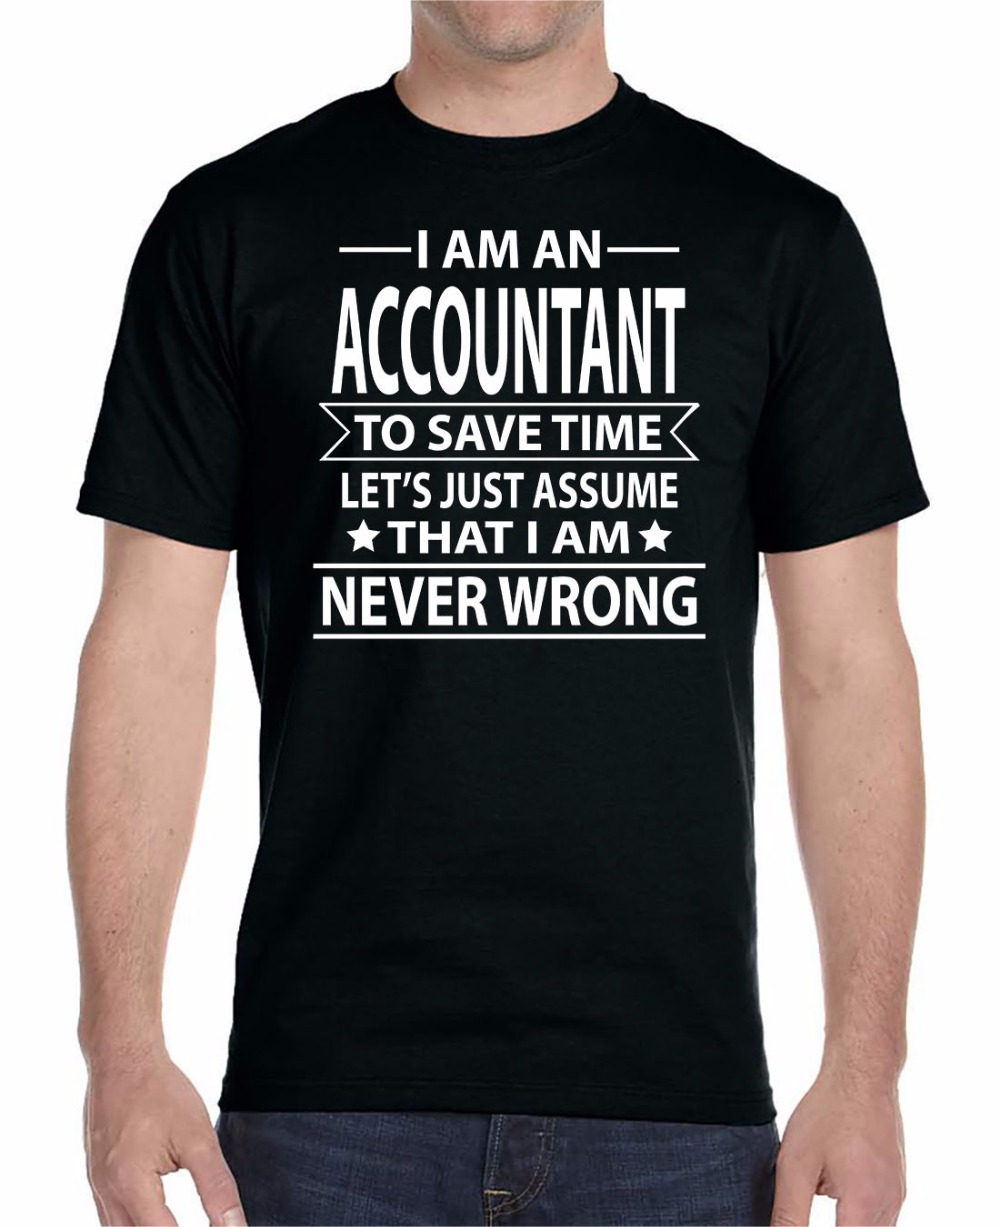 T Shirt Fashion Men Classic Tops Tee Shirts Accountant To Save Time Let's Just Assume That I'm